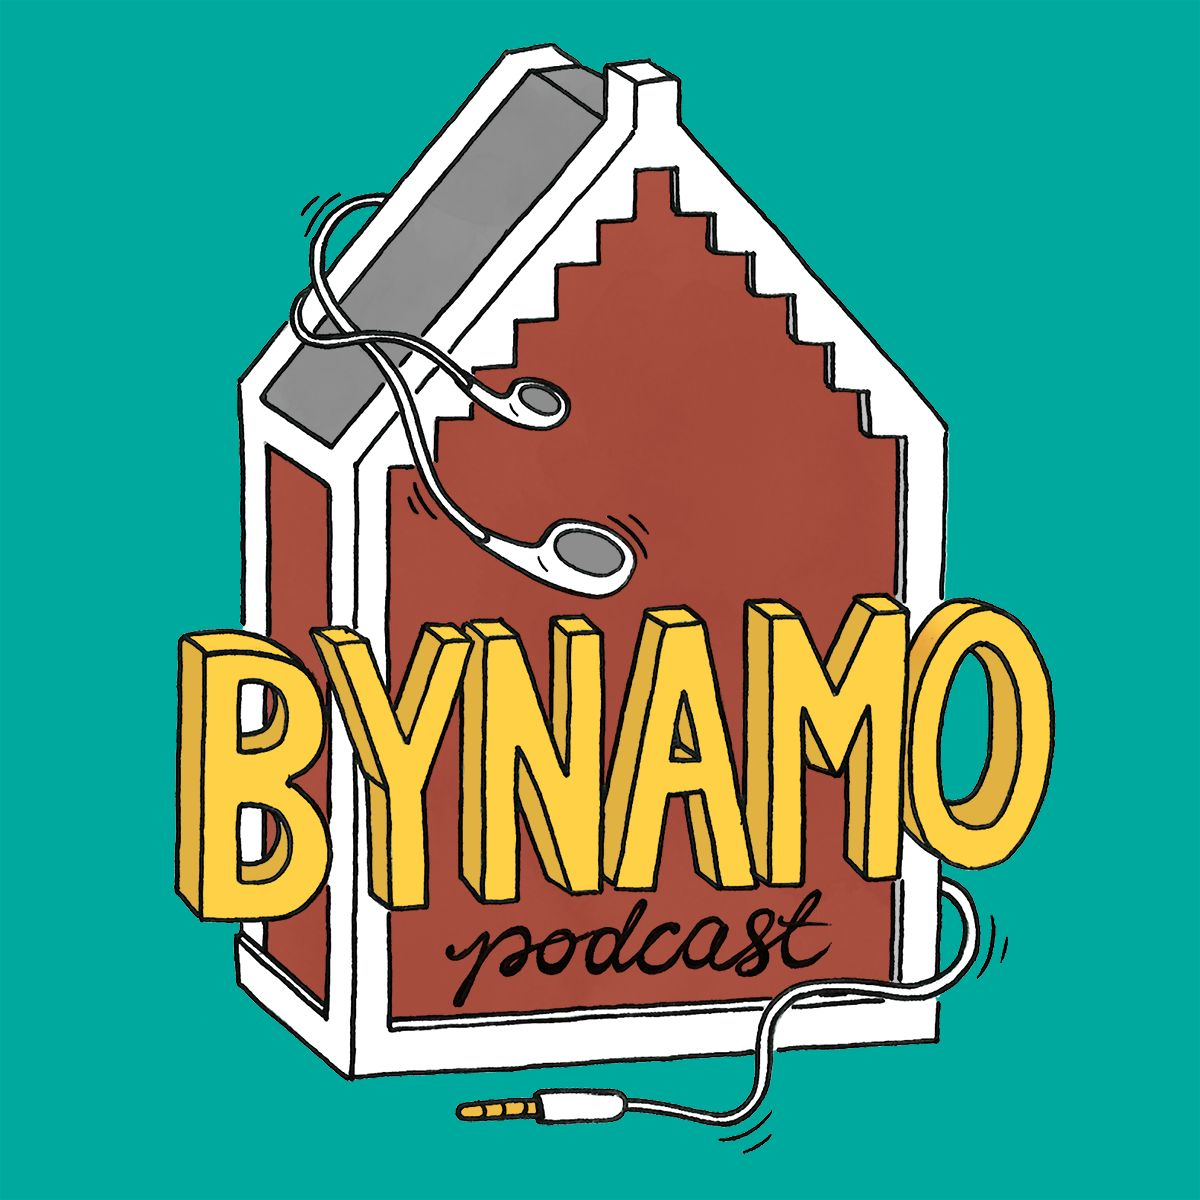 Bynamo podcast